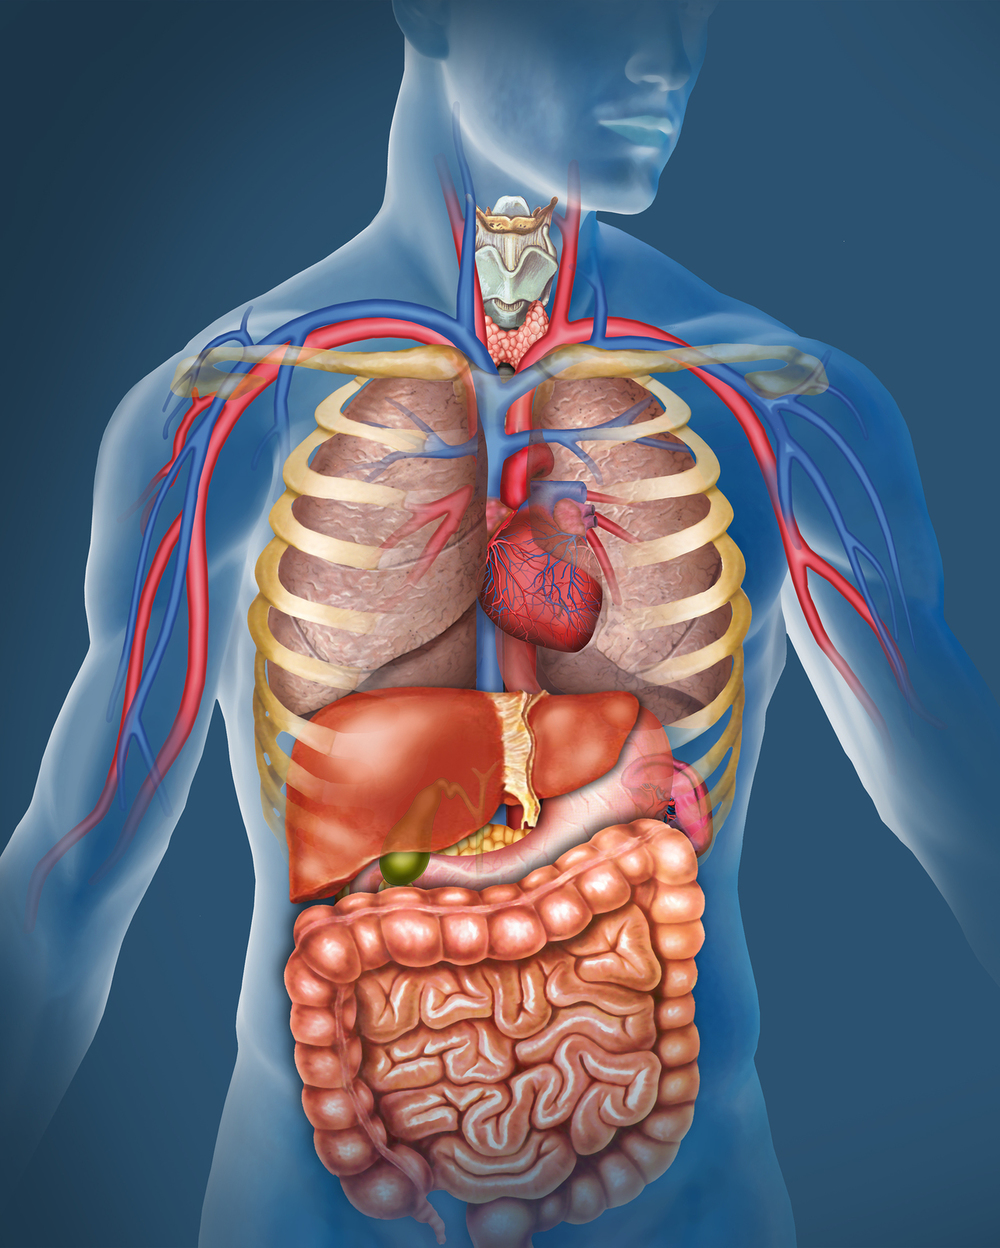 Heartburn medications or proton pump inhibitors or PPIs